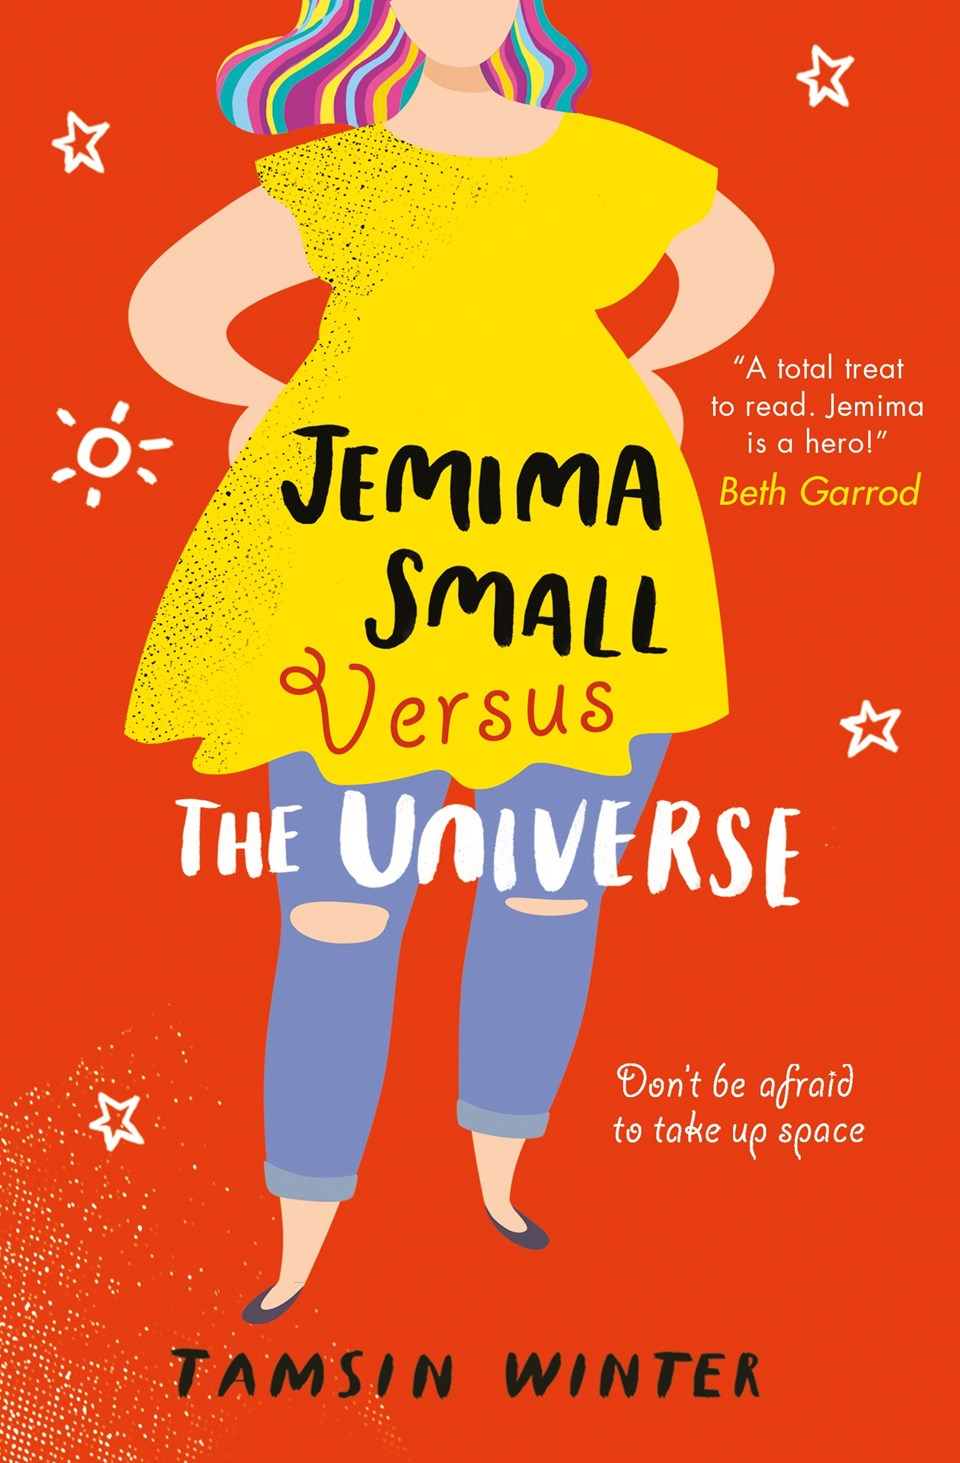 Jemima Small Versus the Universe – Q&A with Tamsin Winter